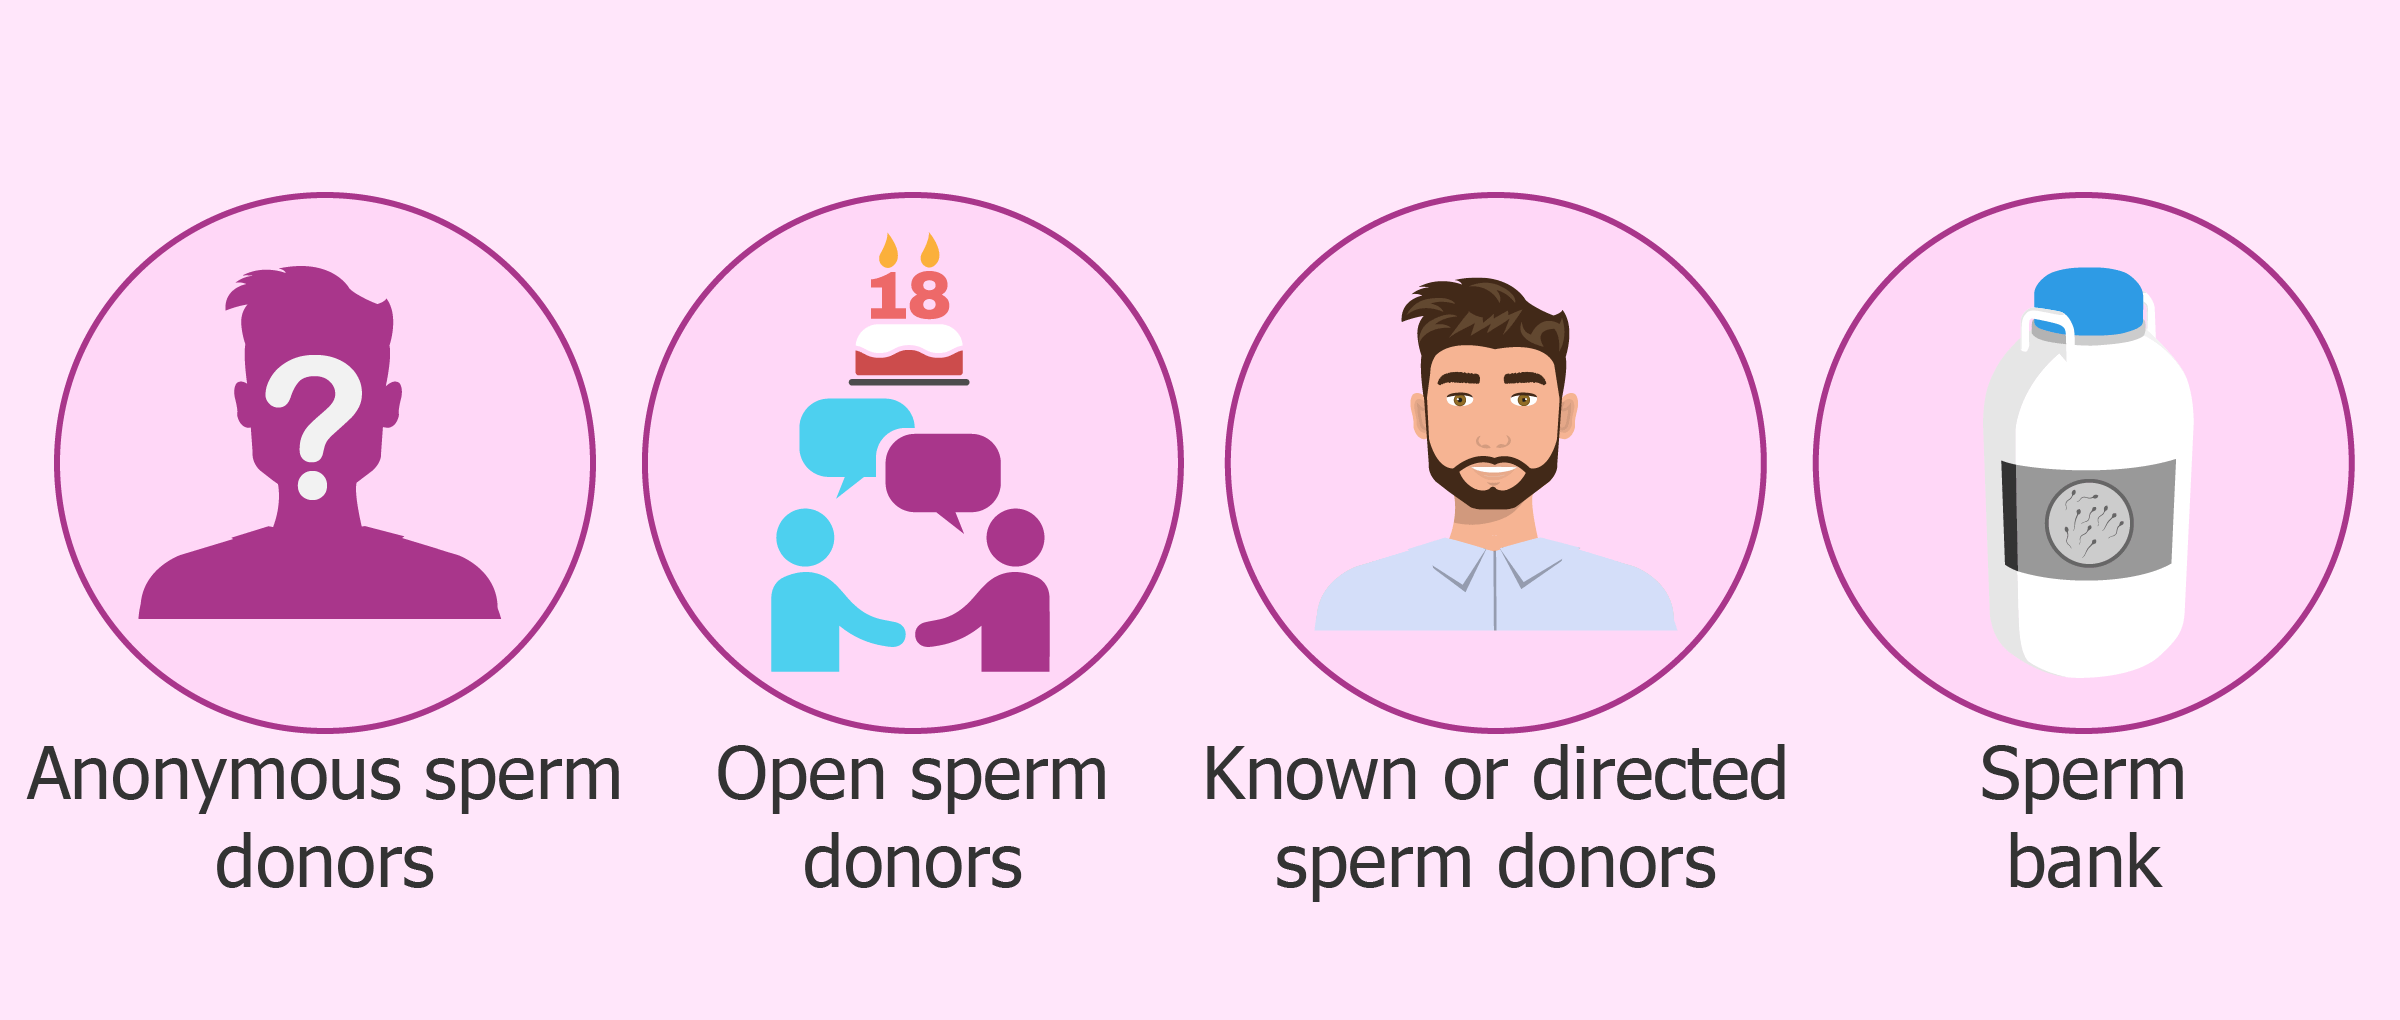 Sperm donor options: open vs. anonymous profiles